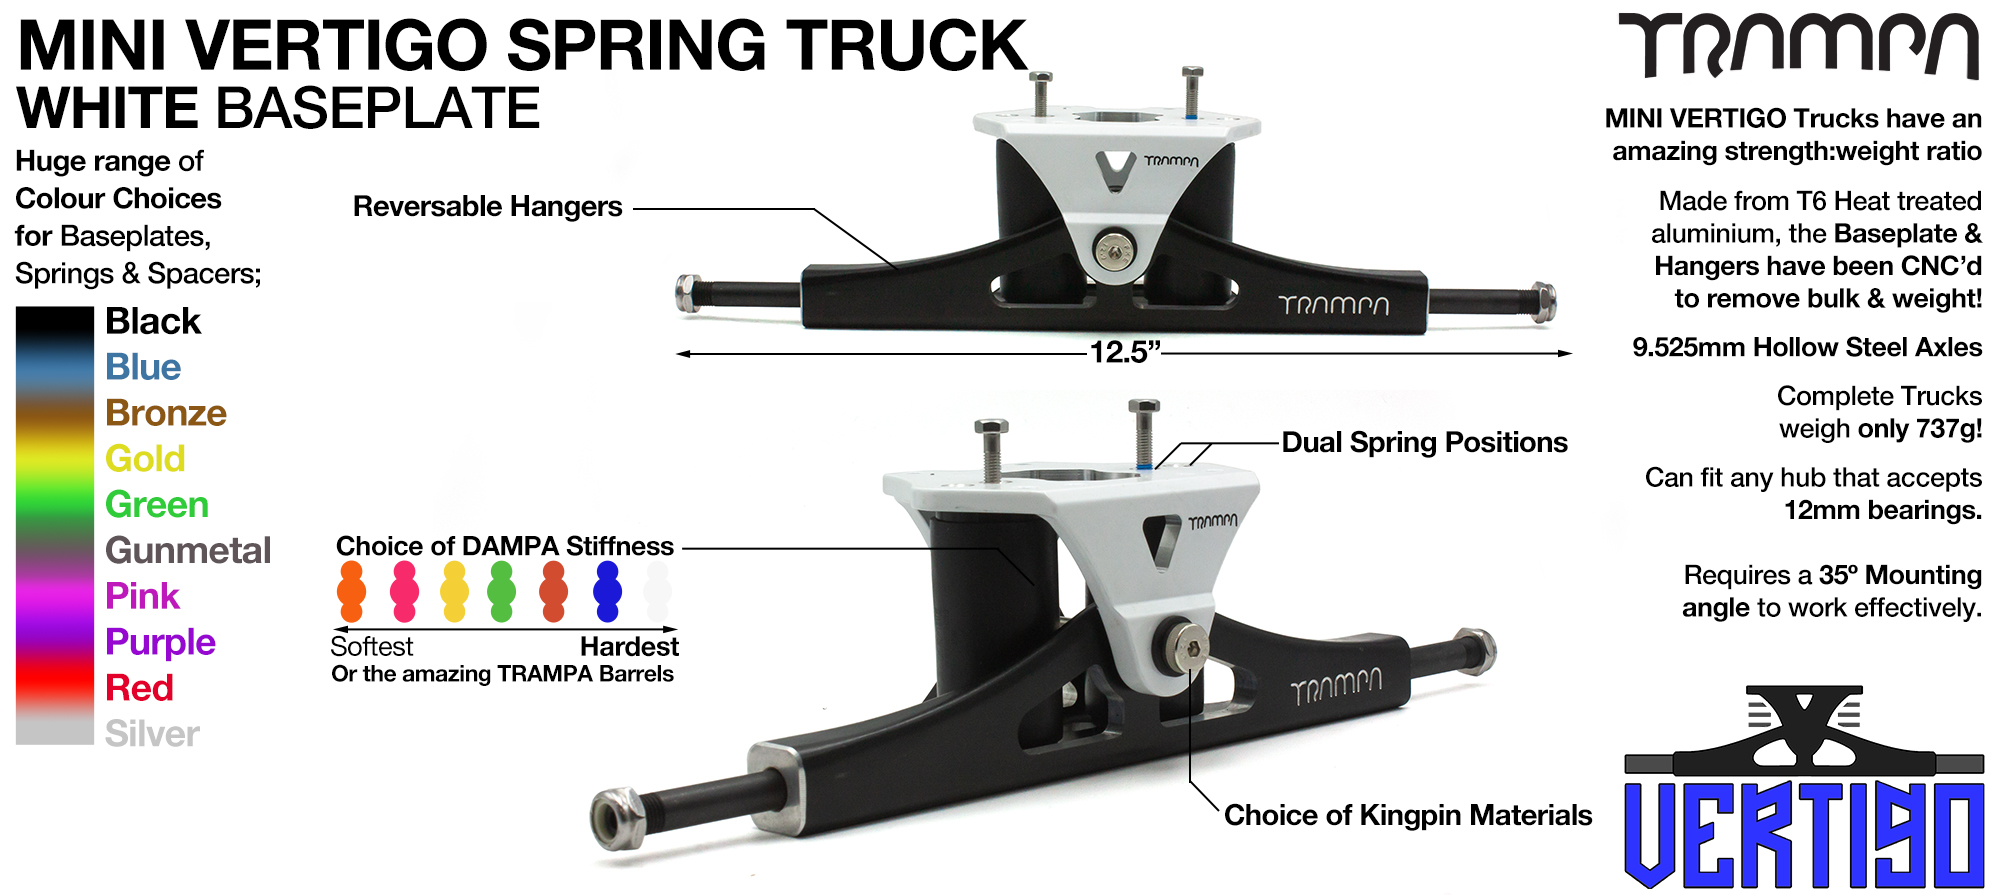 Mini VERTIGO TRAMPA TRUCKS - CNC FORGED Channel Hanger with 9.525mm HOLLOW Steel Axle CNC Baseplate Stainless Steel Kingpin - WHITE